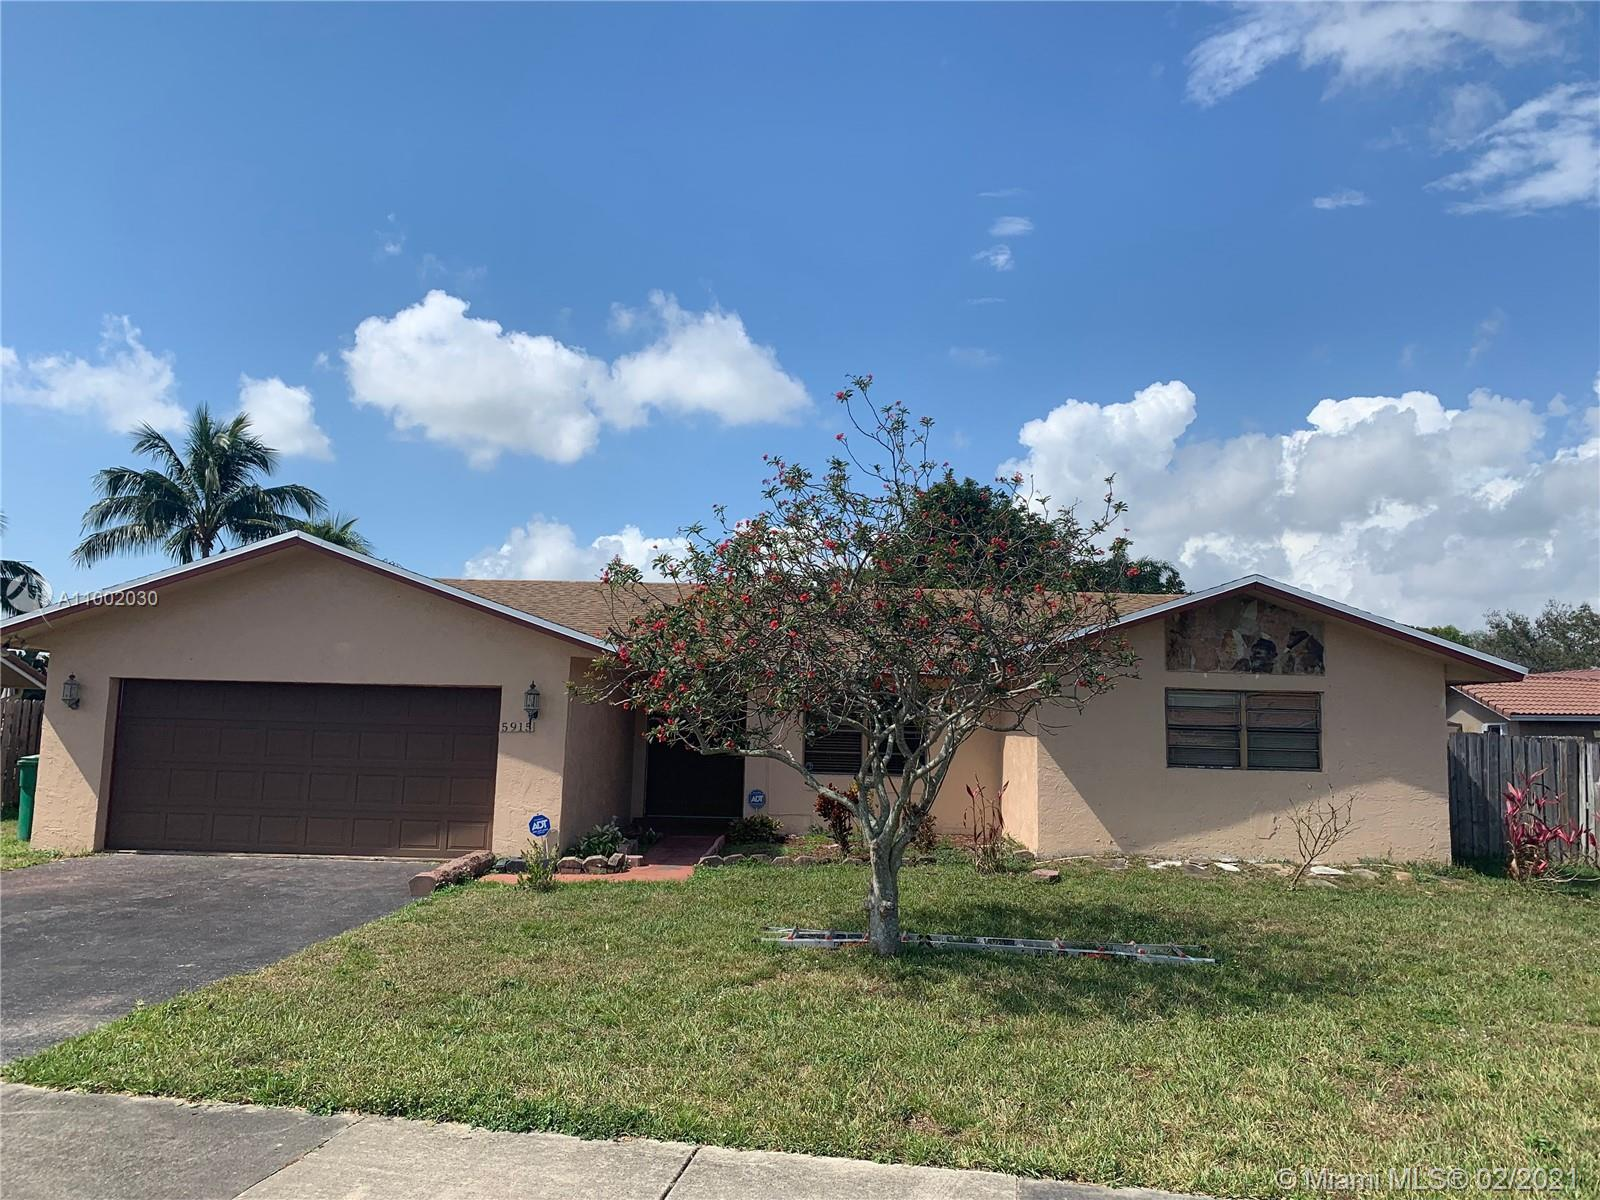 This spacious, 3 bedroom 2 bathroom single-family home, located in the heart of Cooper City features an open floor plan with separate dining and living space.  The master bedroom is a great size, which includes a separate walk-in closet. You'll enjoy the large screened-in patio that sits perfectly on a tree-shaded lot. The roof was replaced in 2021. No HOA.  Located near great Schools, Restaurants, Shopping & all major highways.